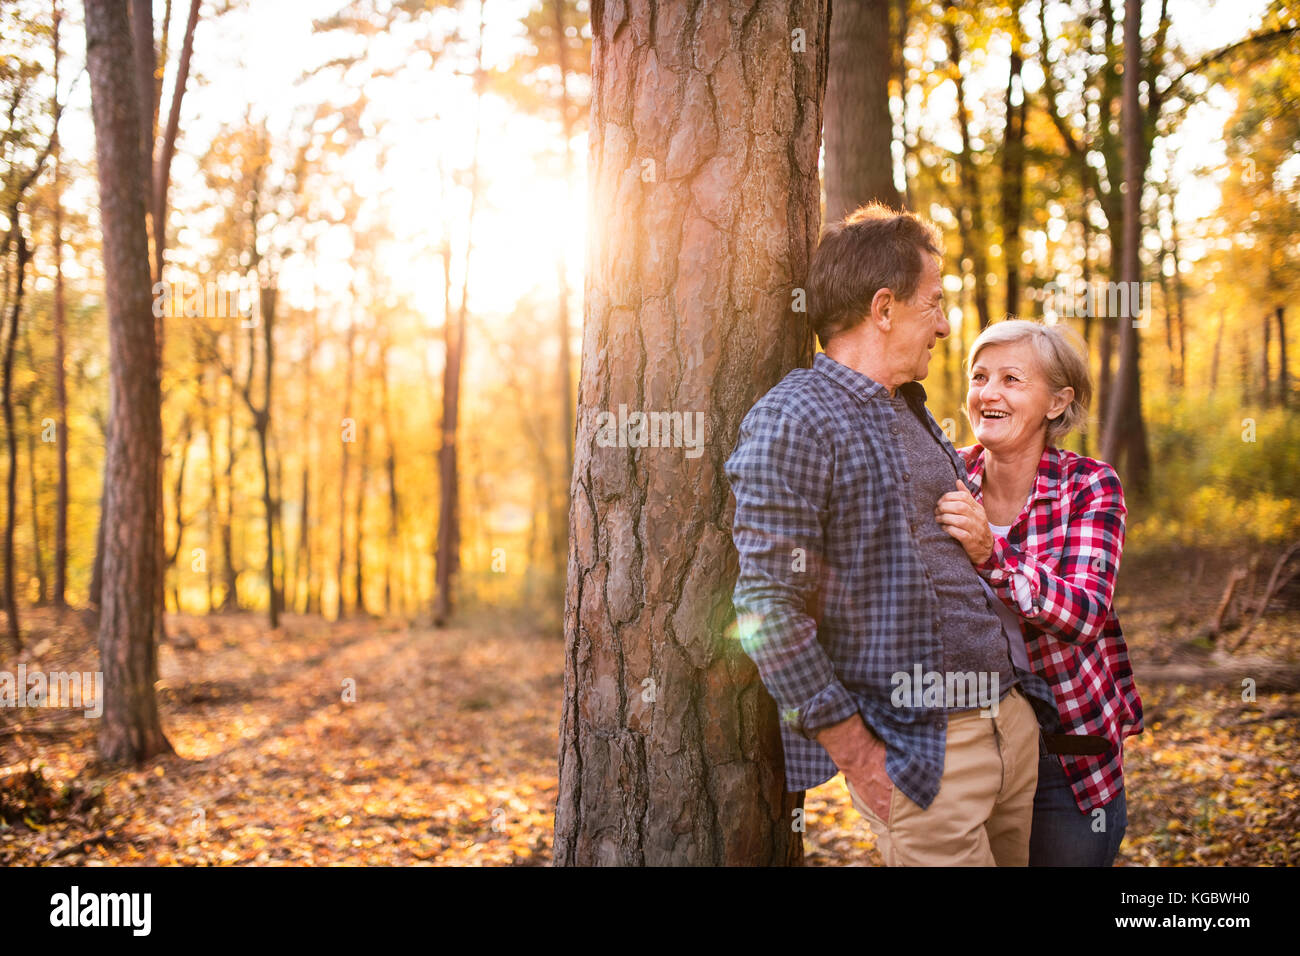 Senior couple on a walk in an autumn forest. - Stock Image